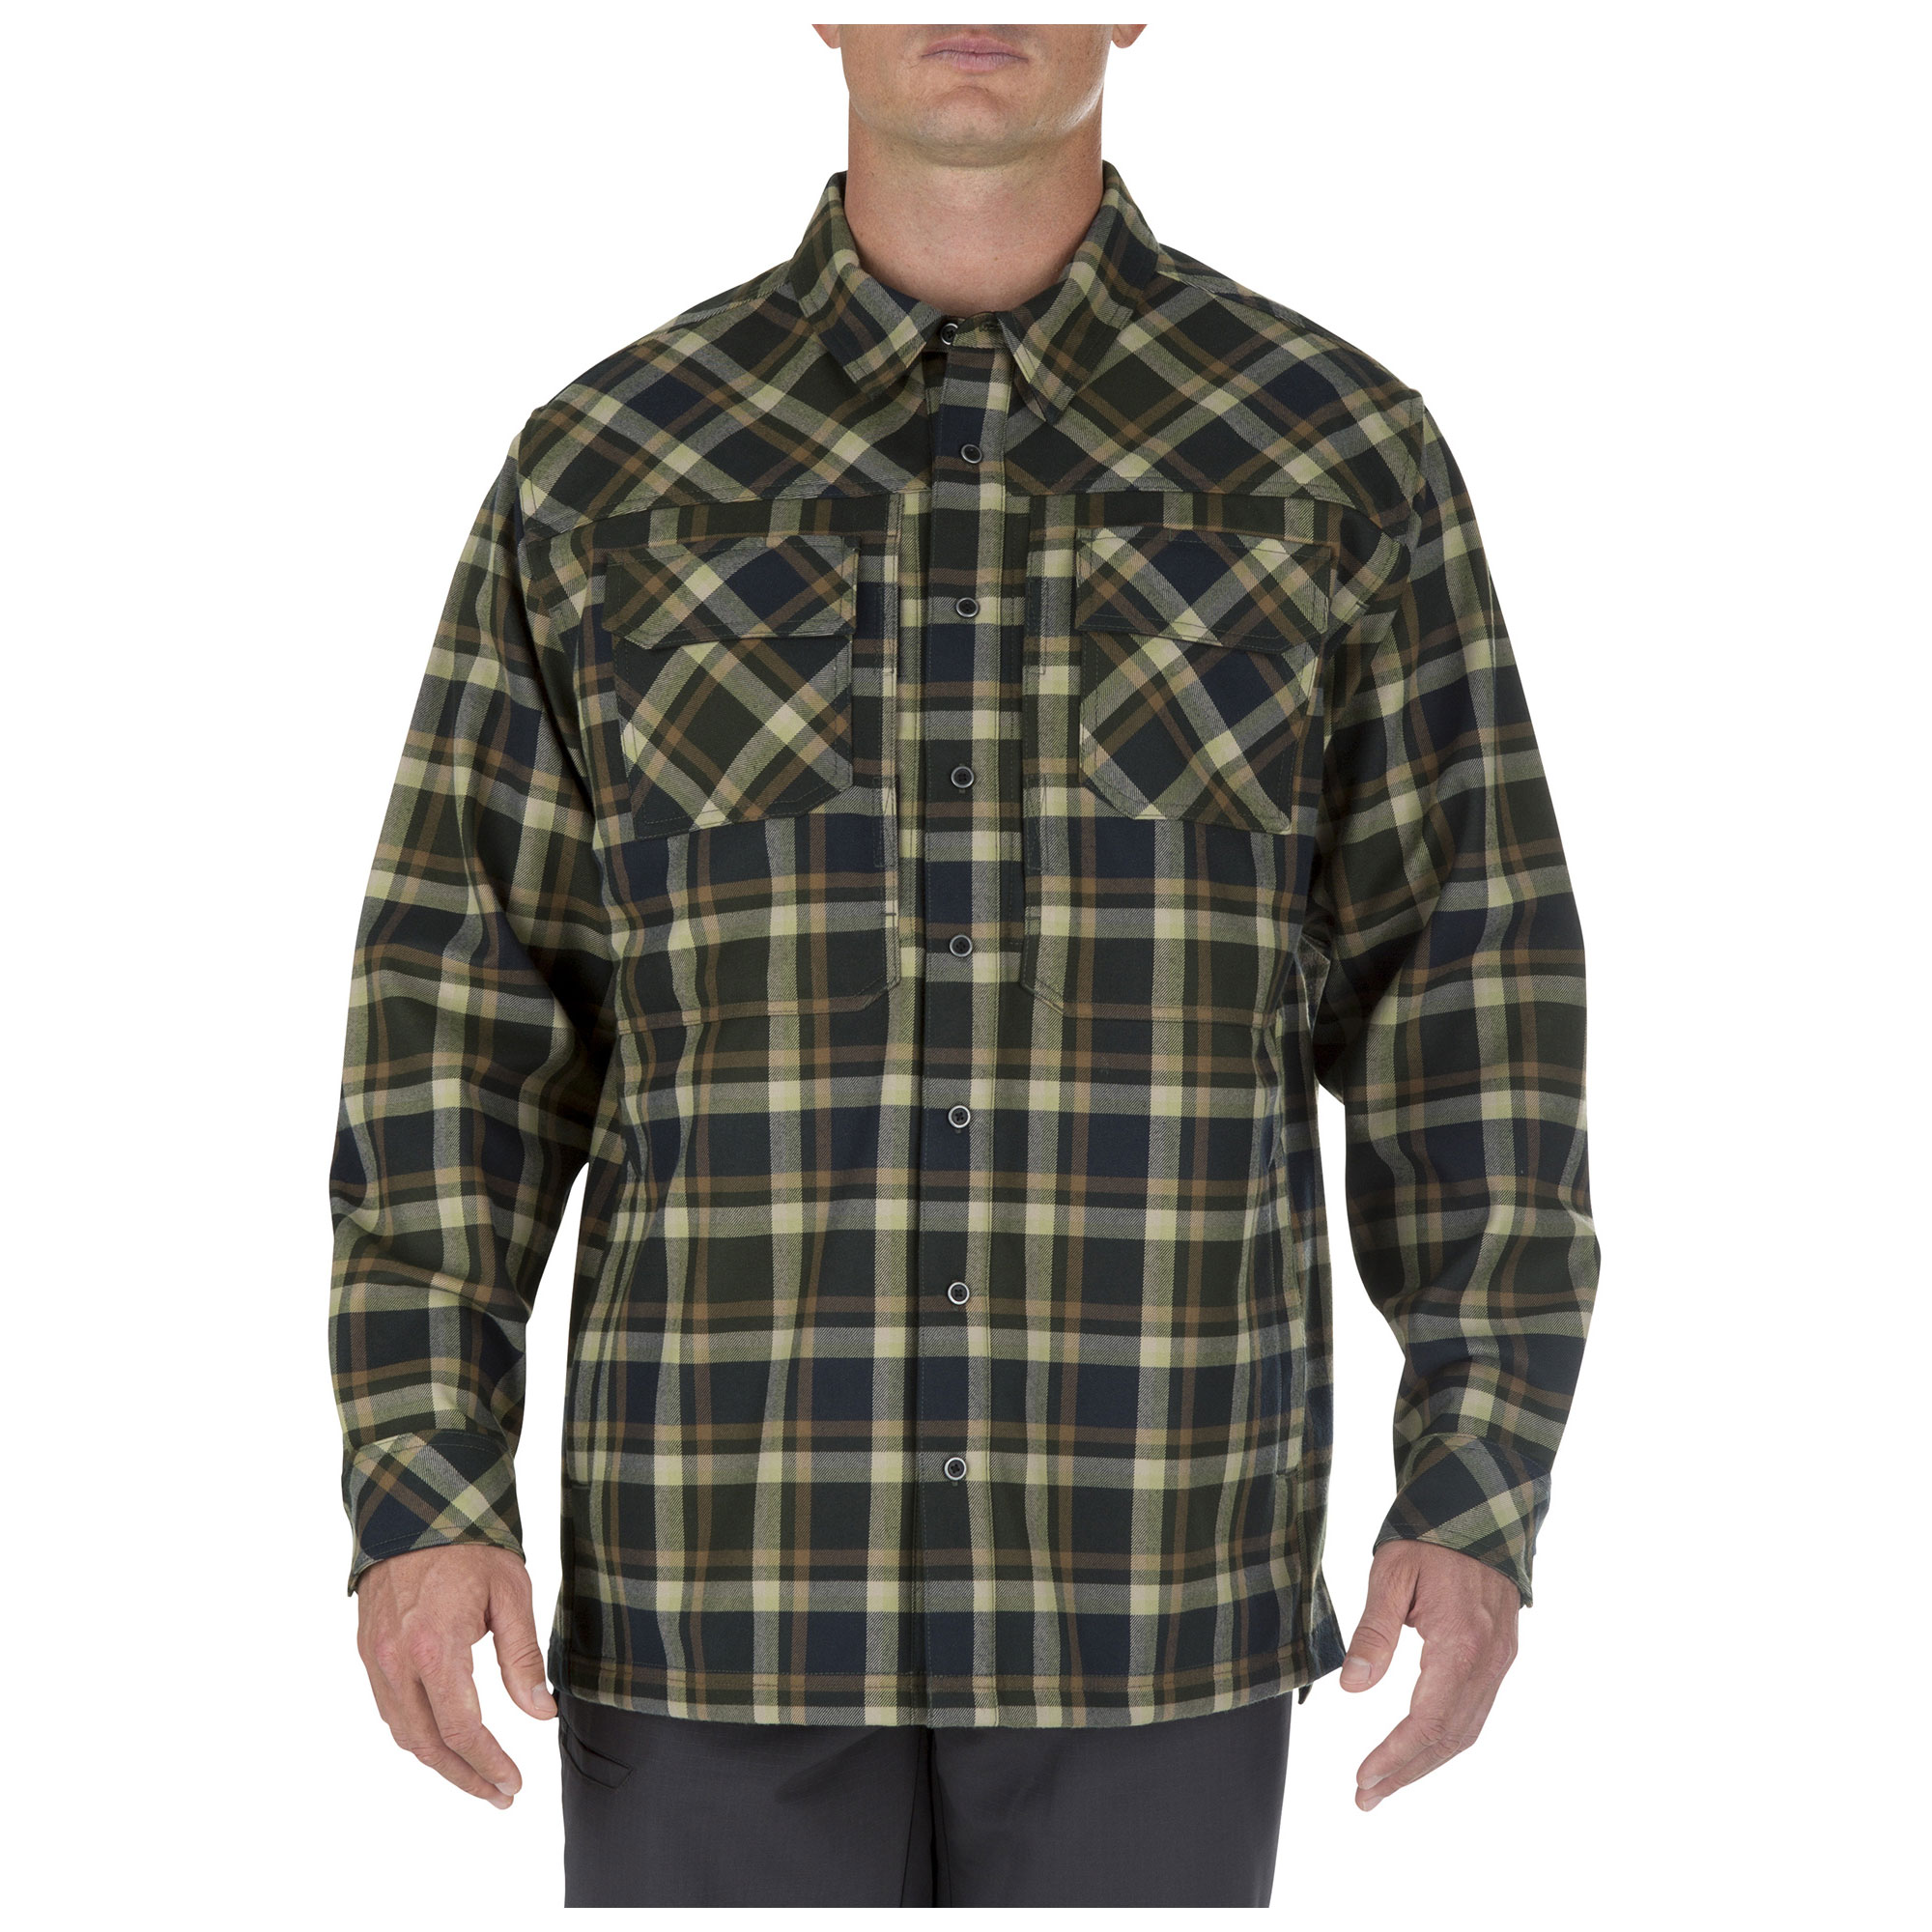 5.11 Tactical Men's Firecracker Jacket (Green), Size S (CCW Concealed Carry) thumbnail